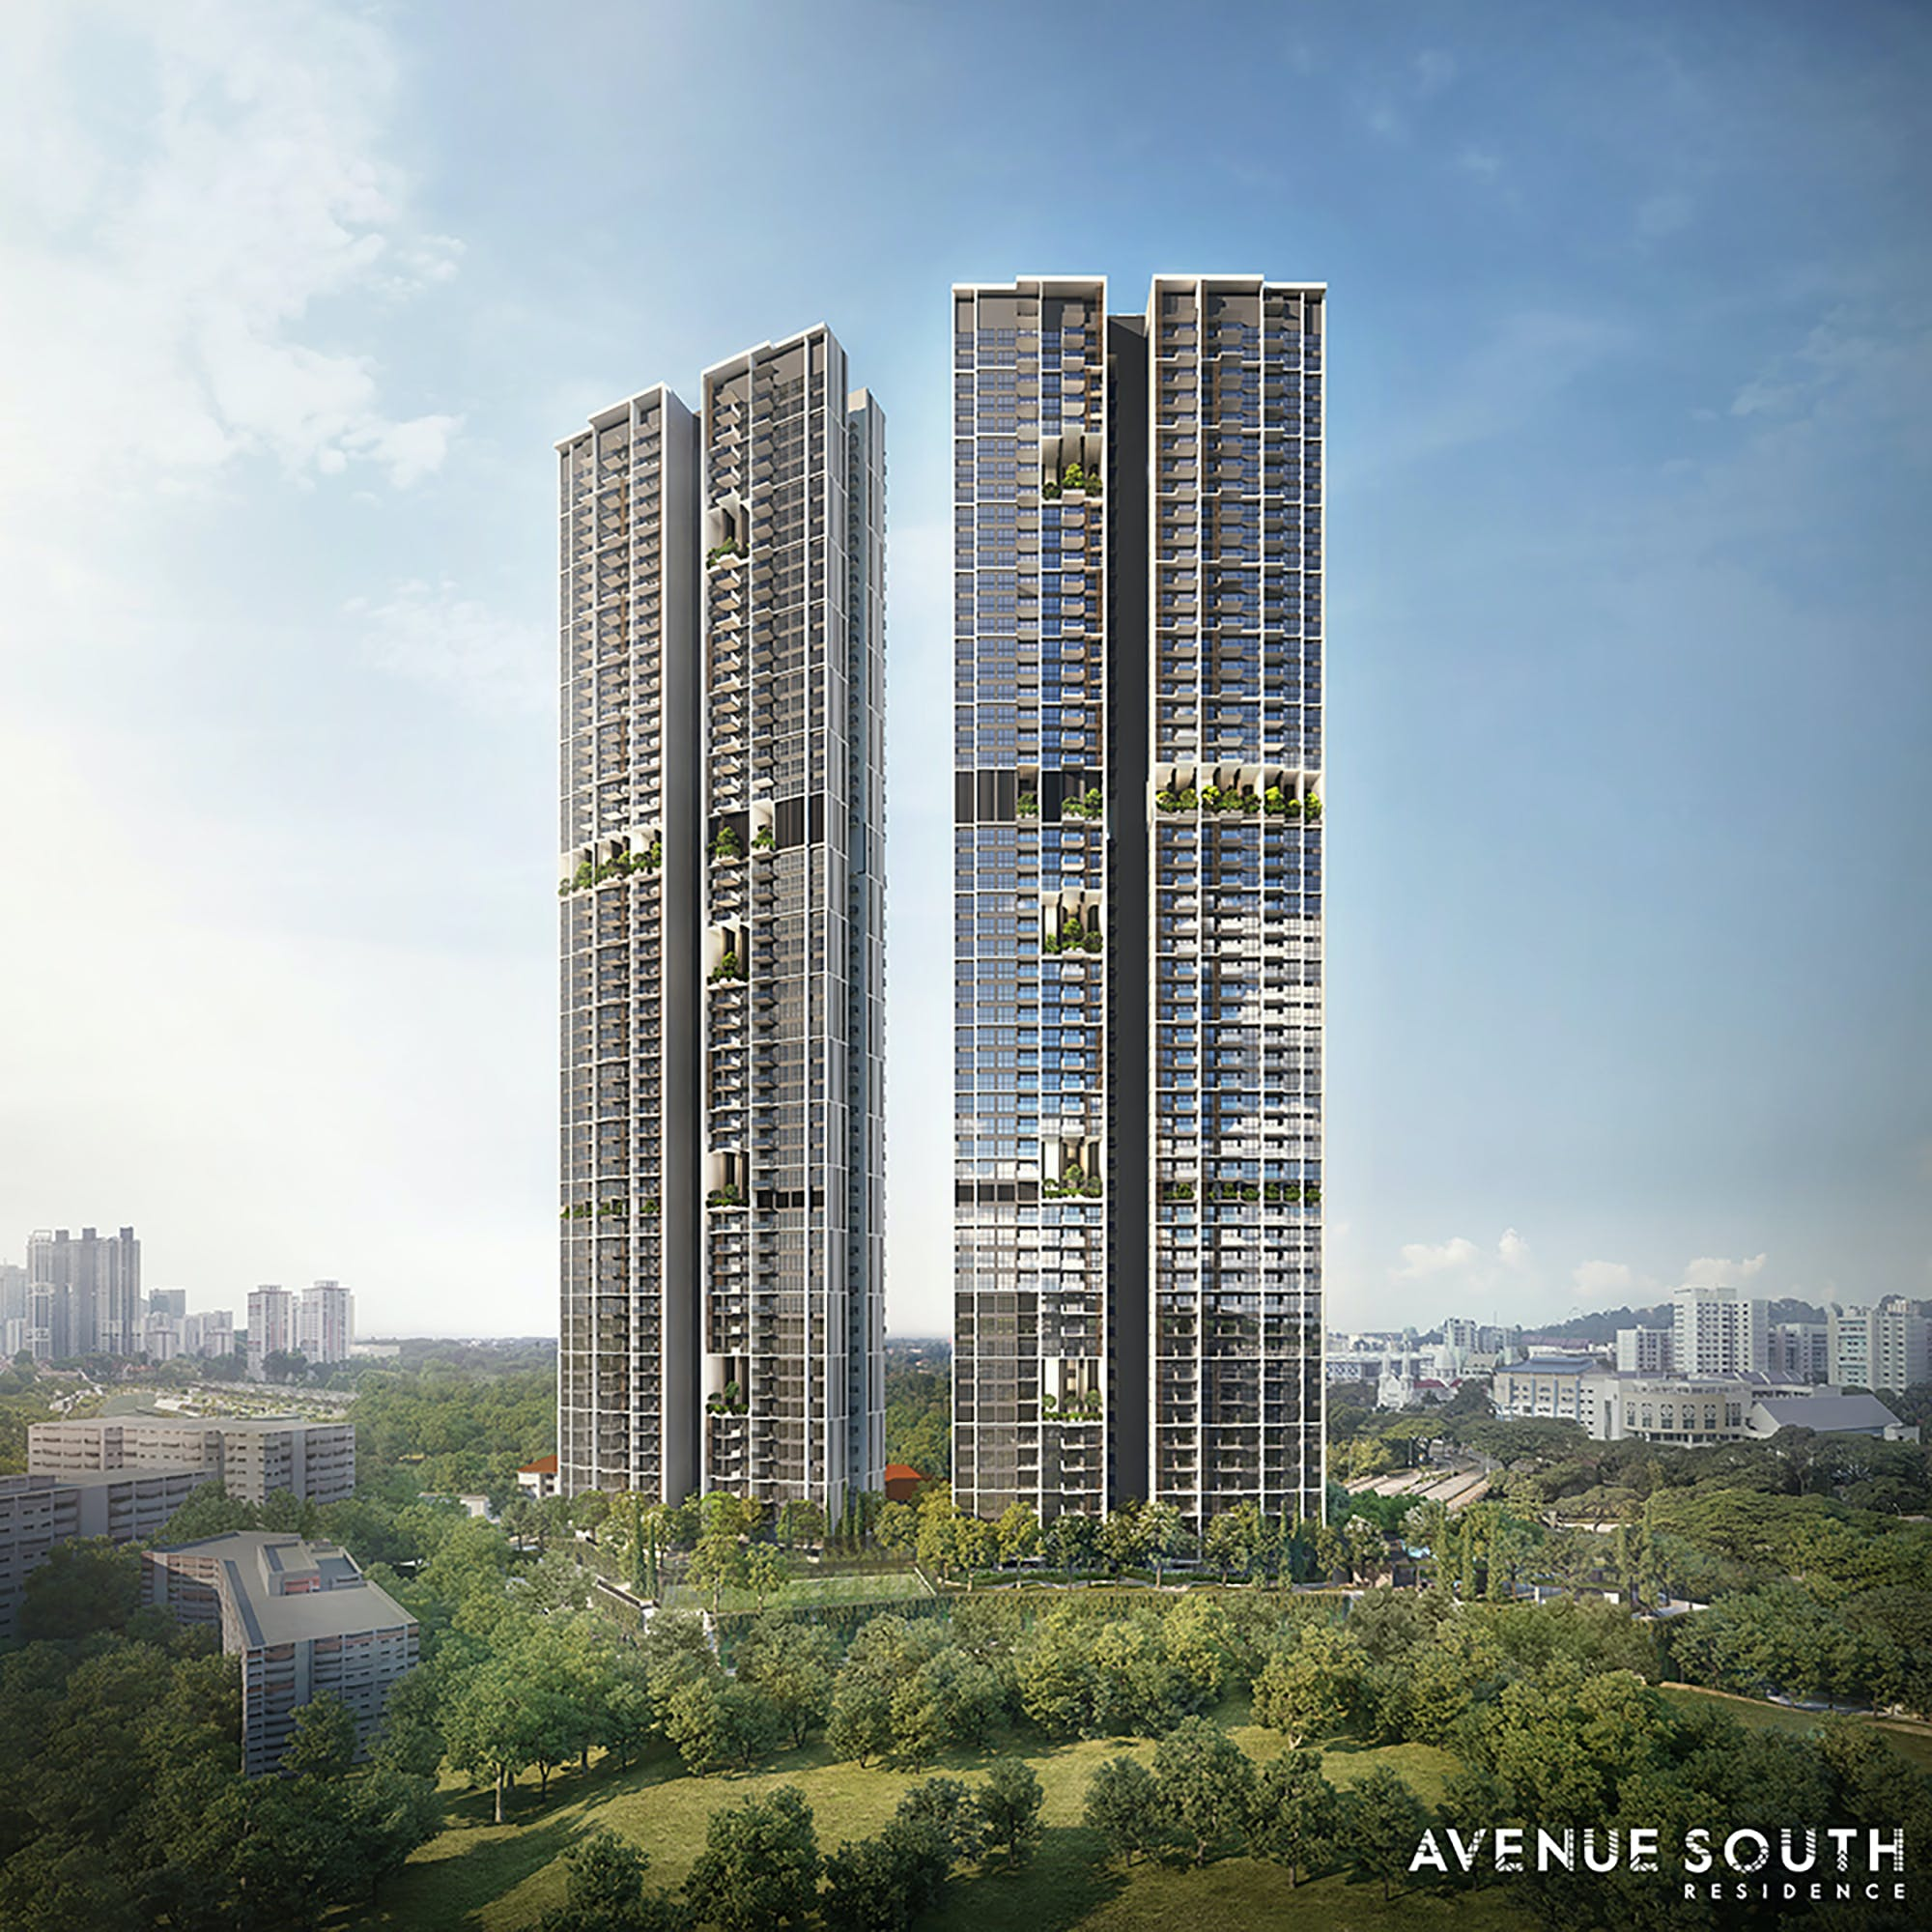 Artists' impression of Avenue South Residence